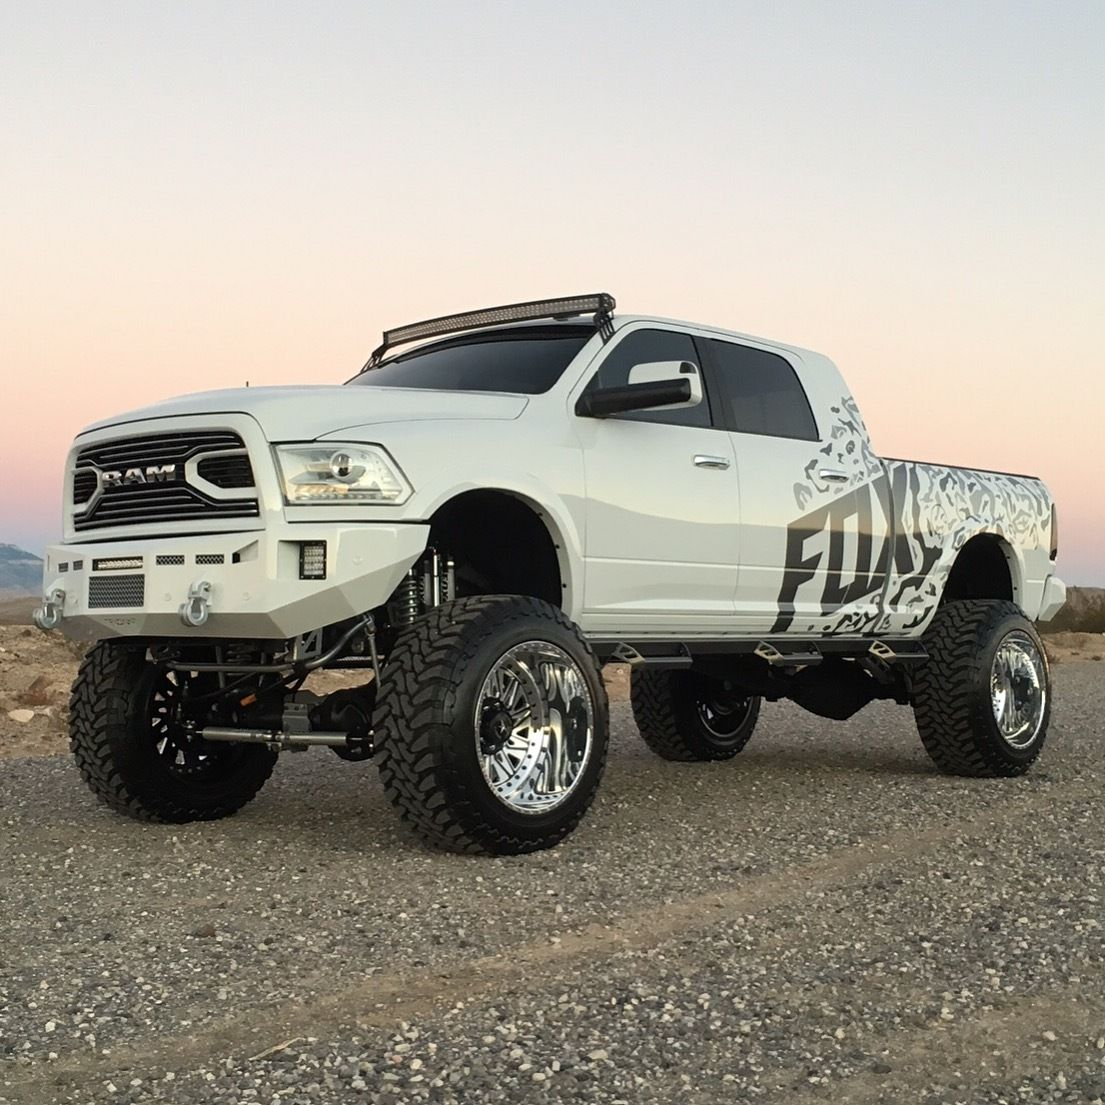 2015 ram 2500 laramie lifted sema truck for sale. Black Bedroom Furniture Sets. Home Design Ideas